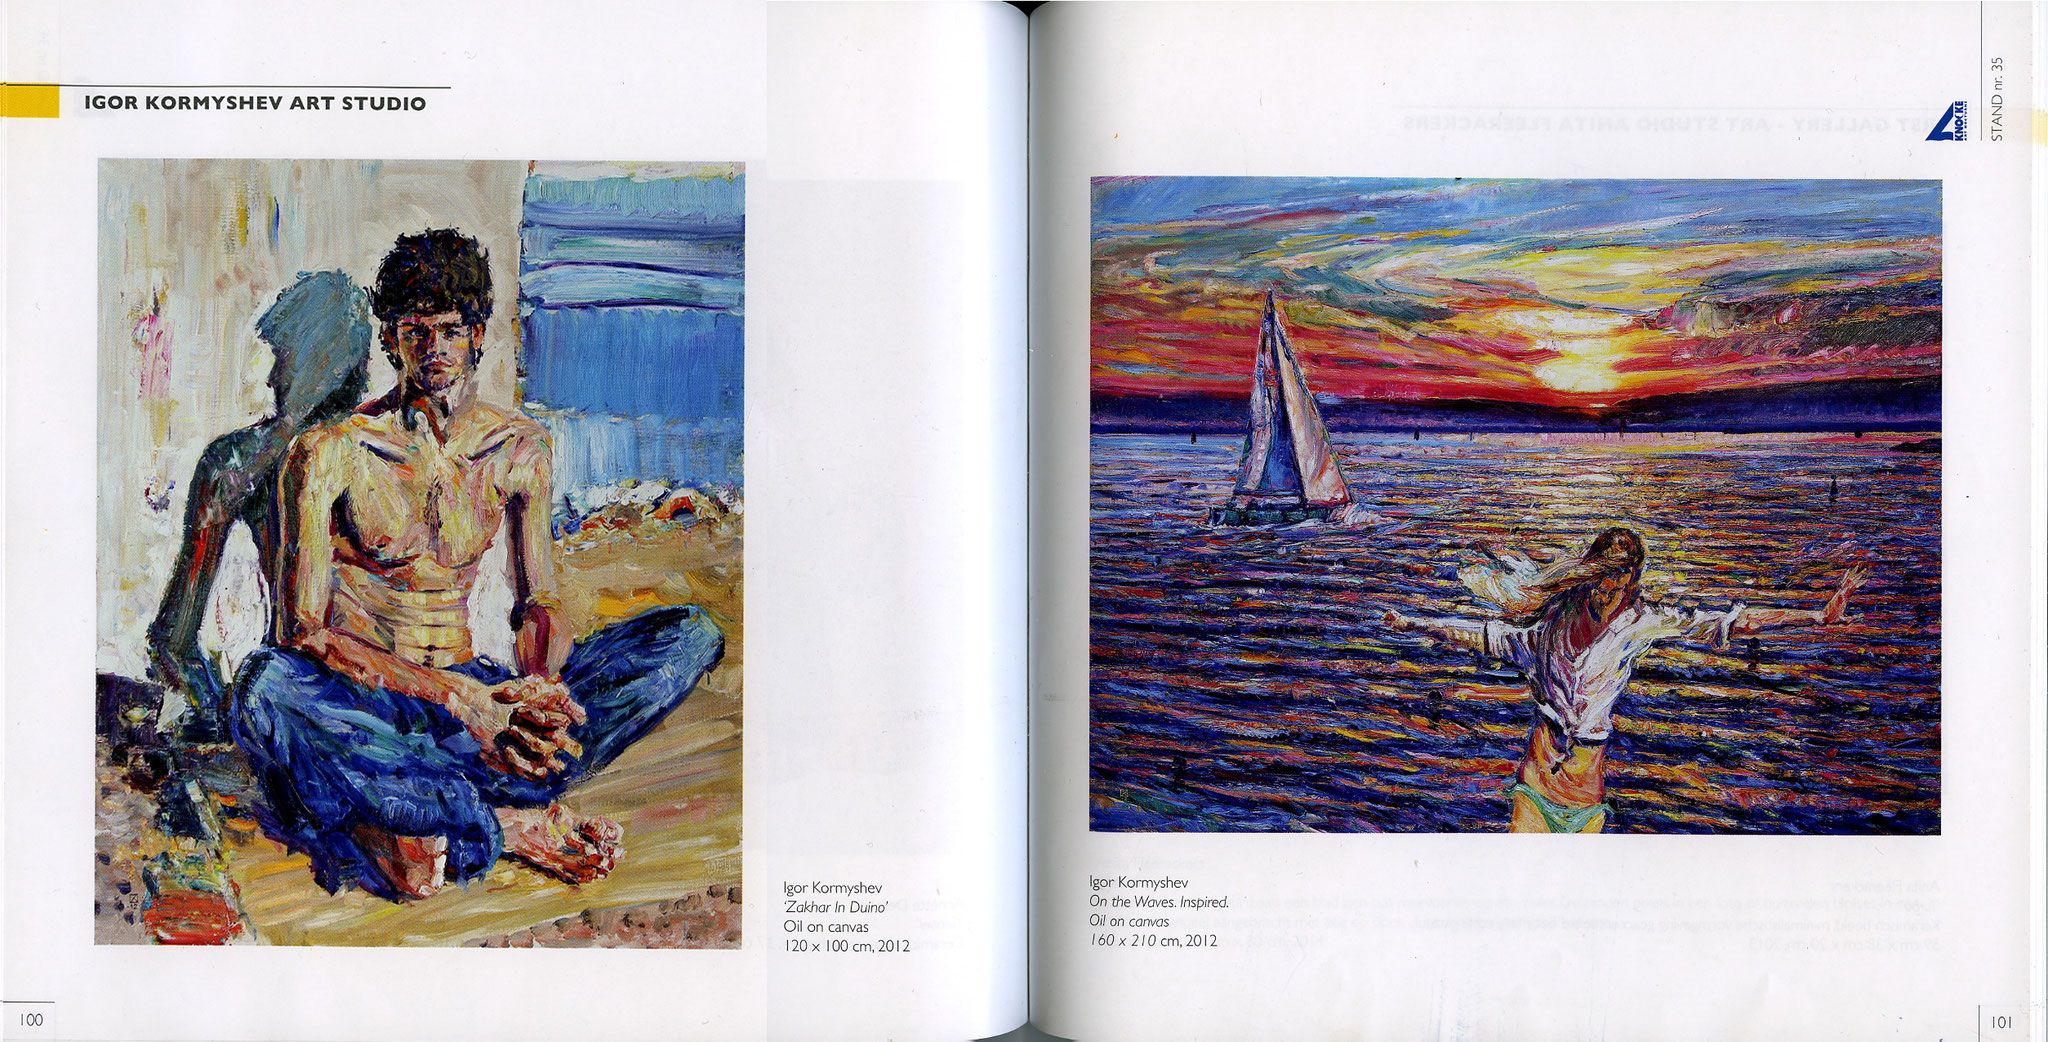 The catalog of The Art Nocturne Knocke, 09-17.08.2014